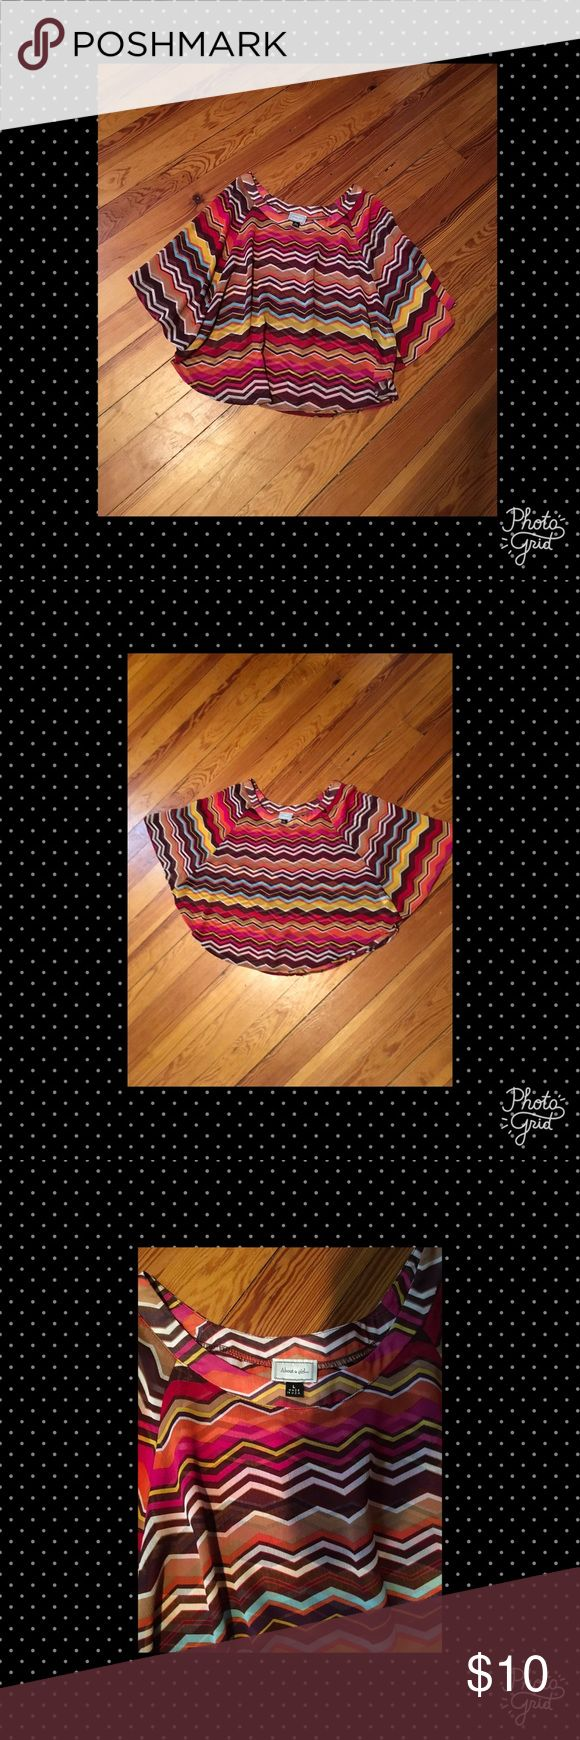 """""""About A Girl"""" Cocoon Blouse -Large Gorgeous pink, white, orange, yellow, teal and tan zig zag stripe blouse with cocoon/batwing sleeves. It is made by """"About A Girl"""" and is a size Large. The fabric is a lightweight polyester. About A Girl Tops Blouses"""